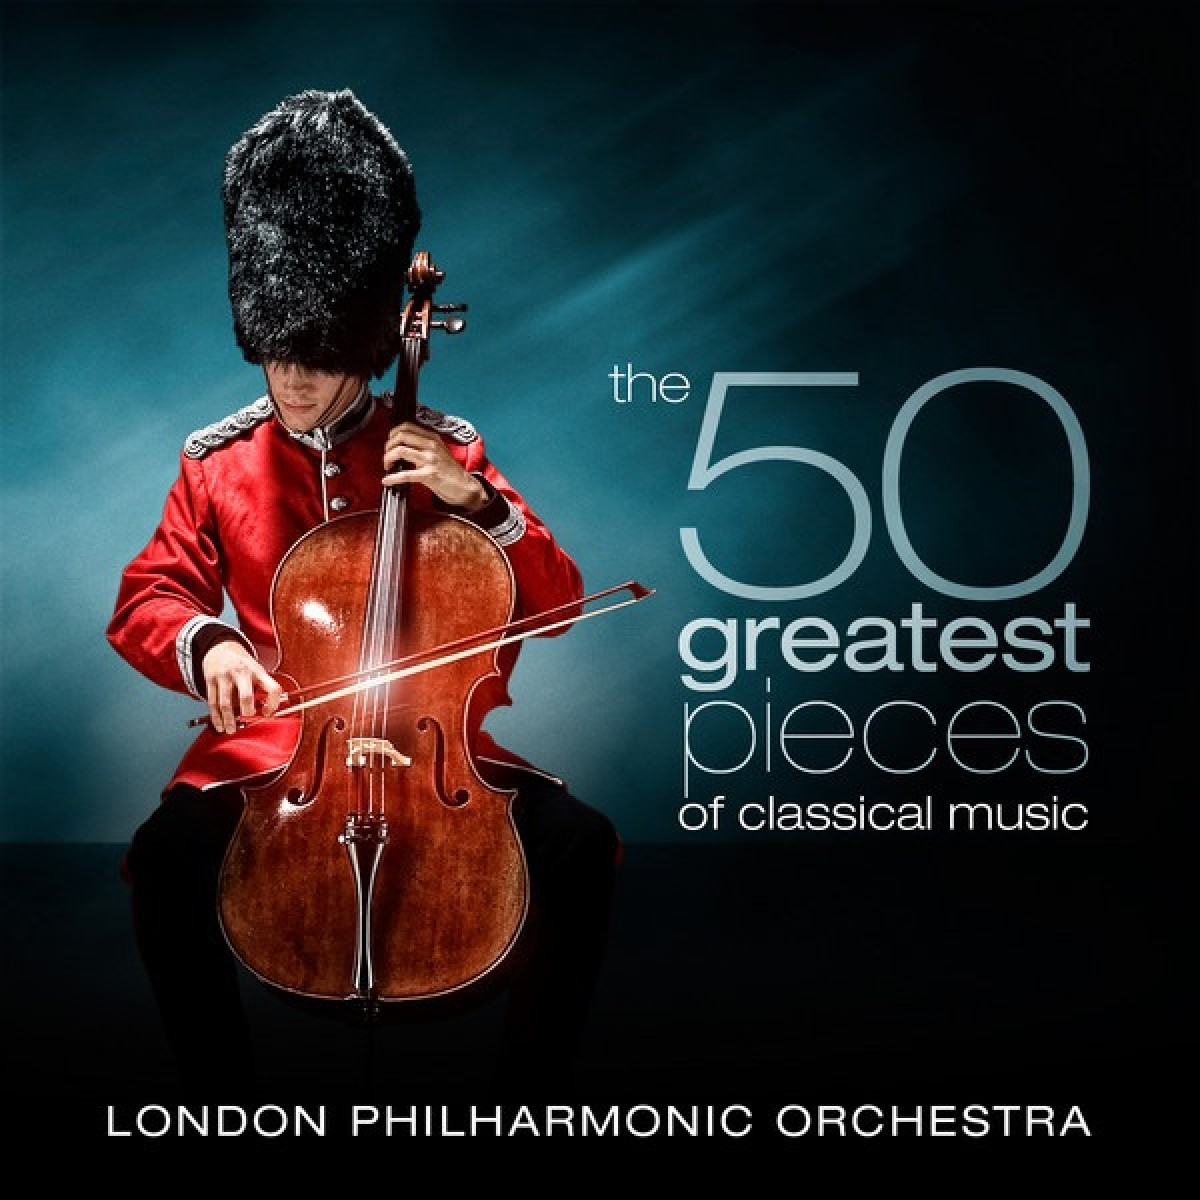 London Philharmonic Orchestra & David Parry - The 50 Greatest Pieces Of Classical; David Parry CD - 9029546822